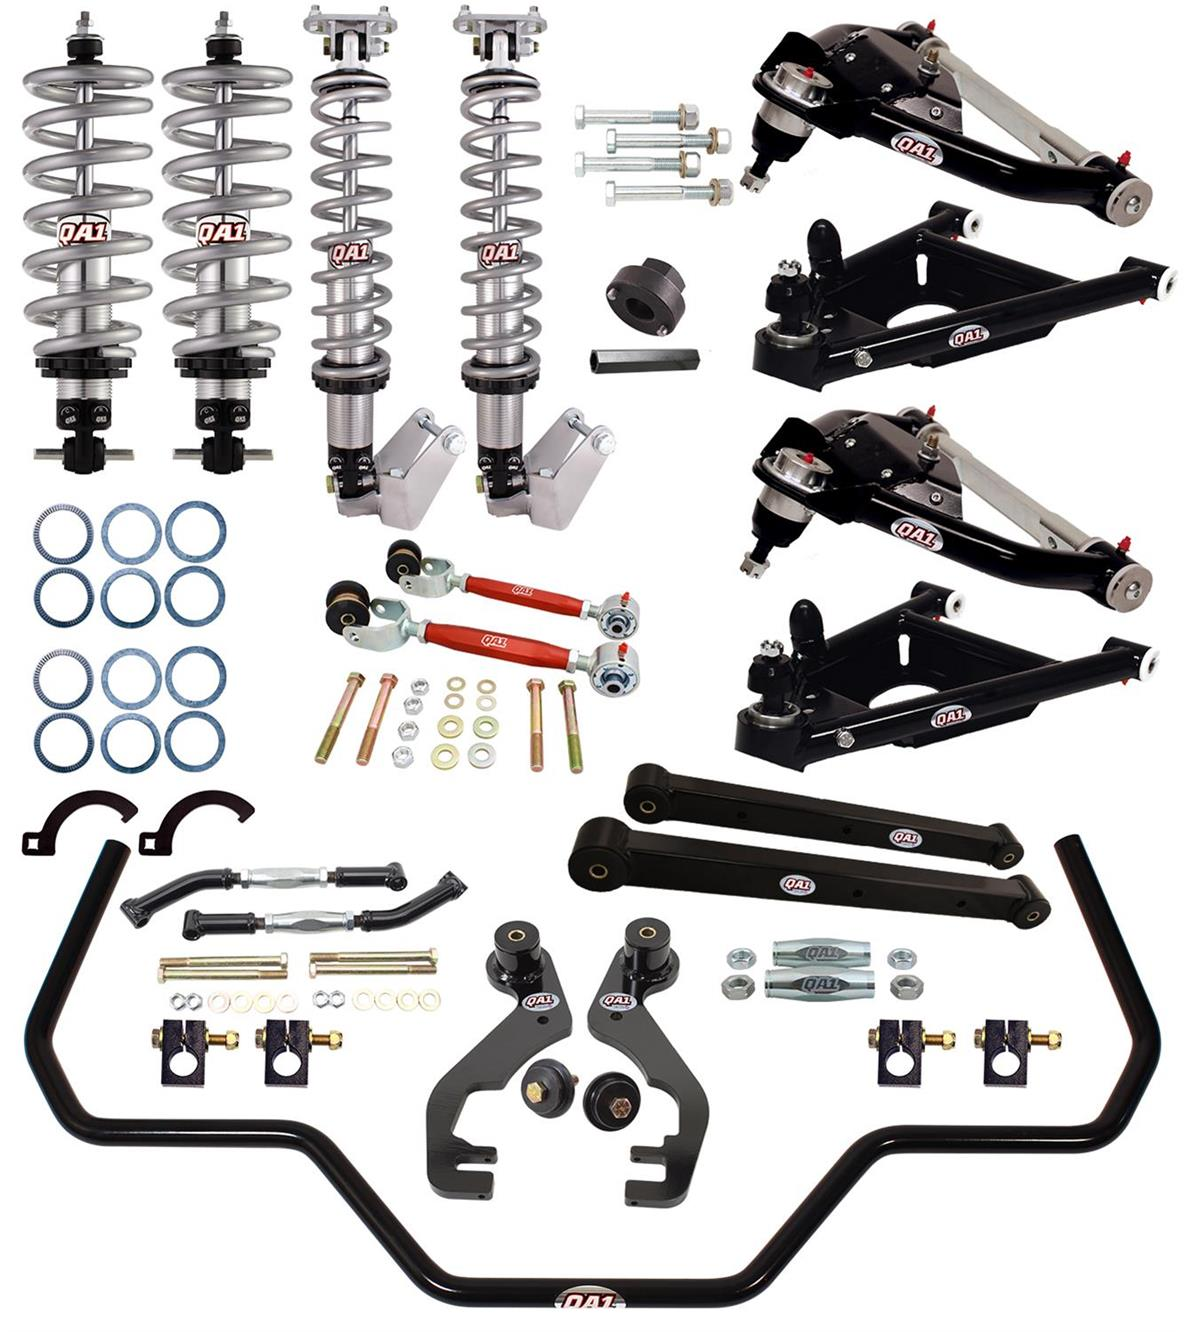 QA1 Level 2 Drag Racing Suspension Kits DK02-GMG1